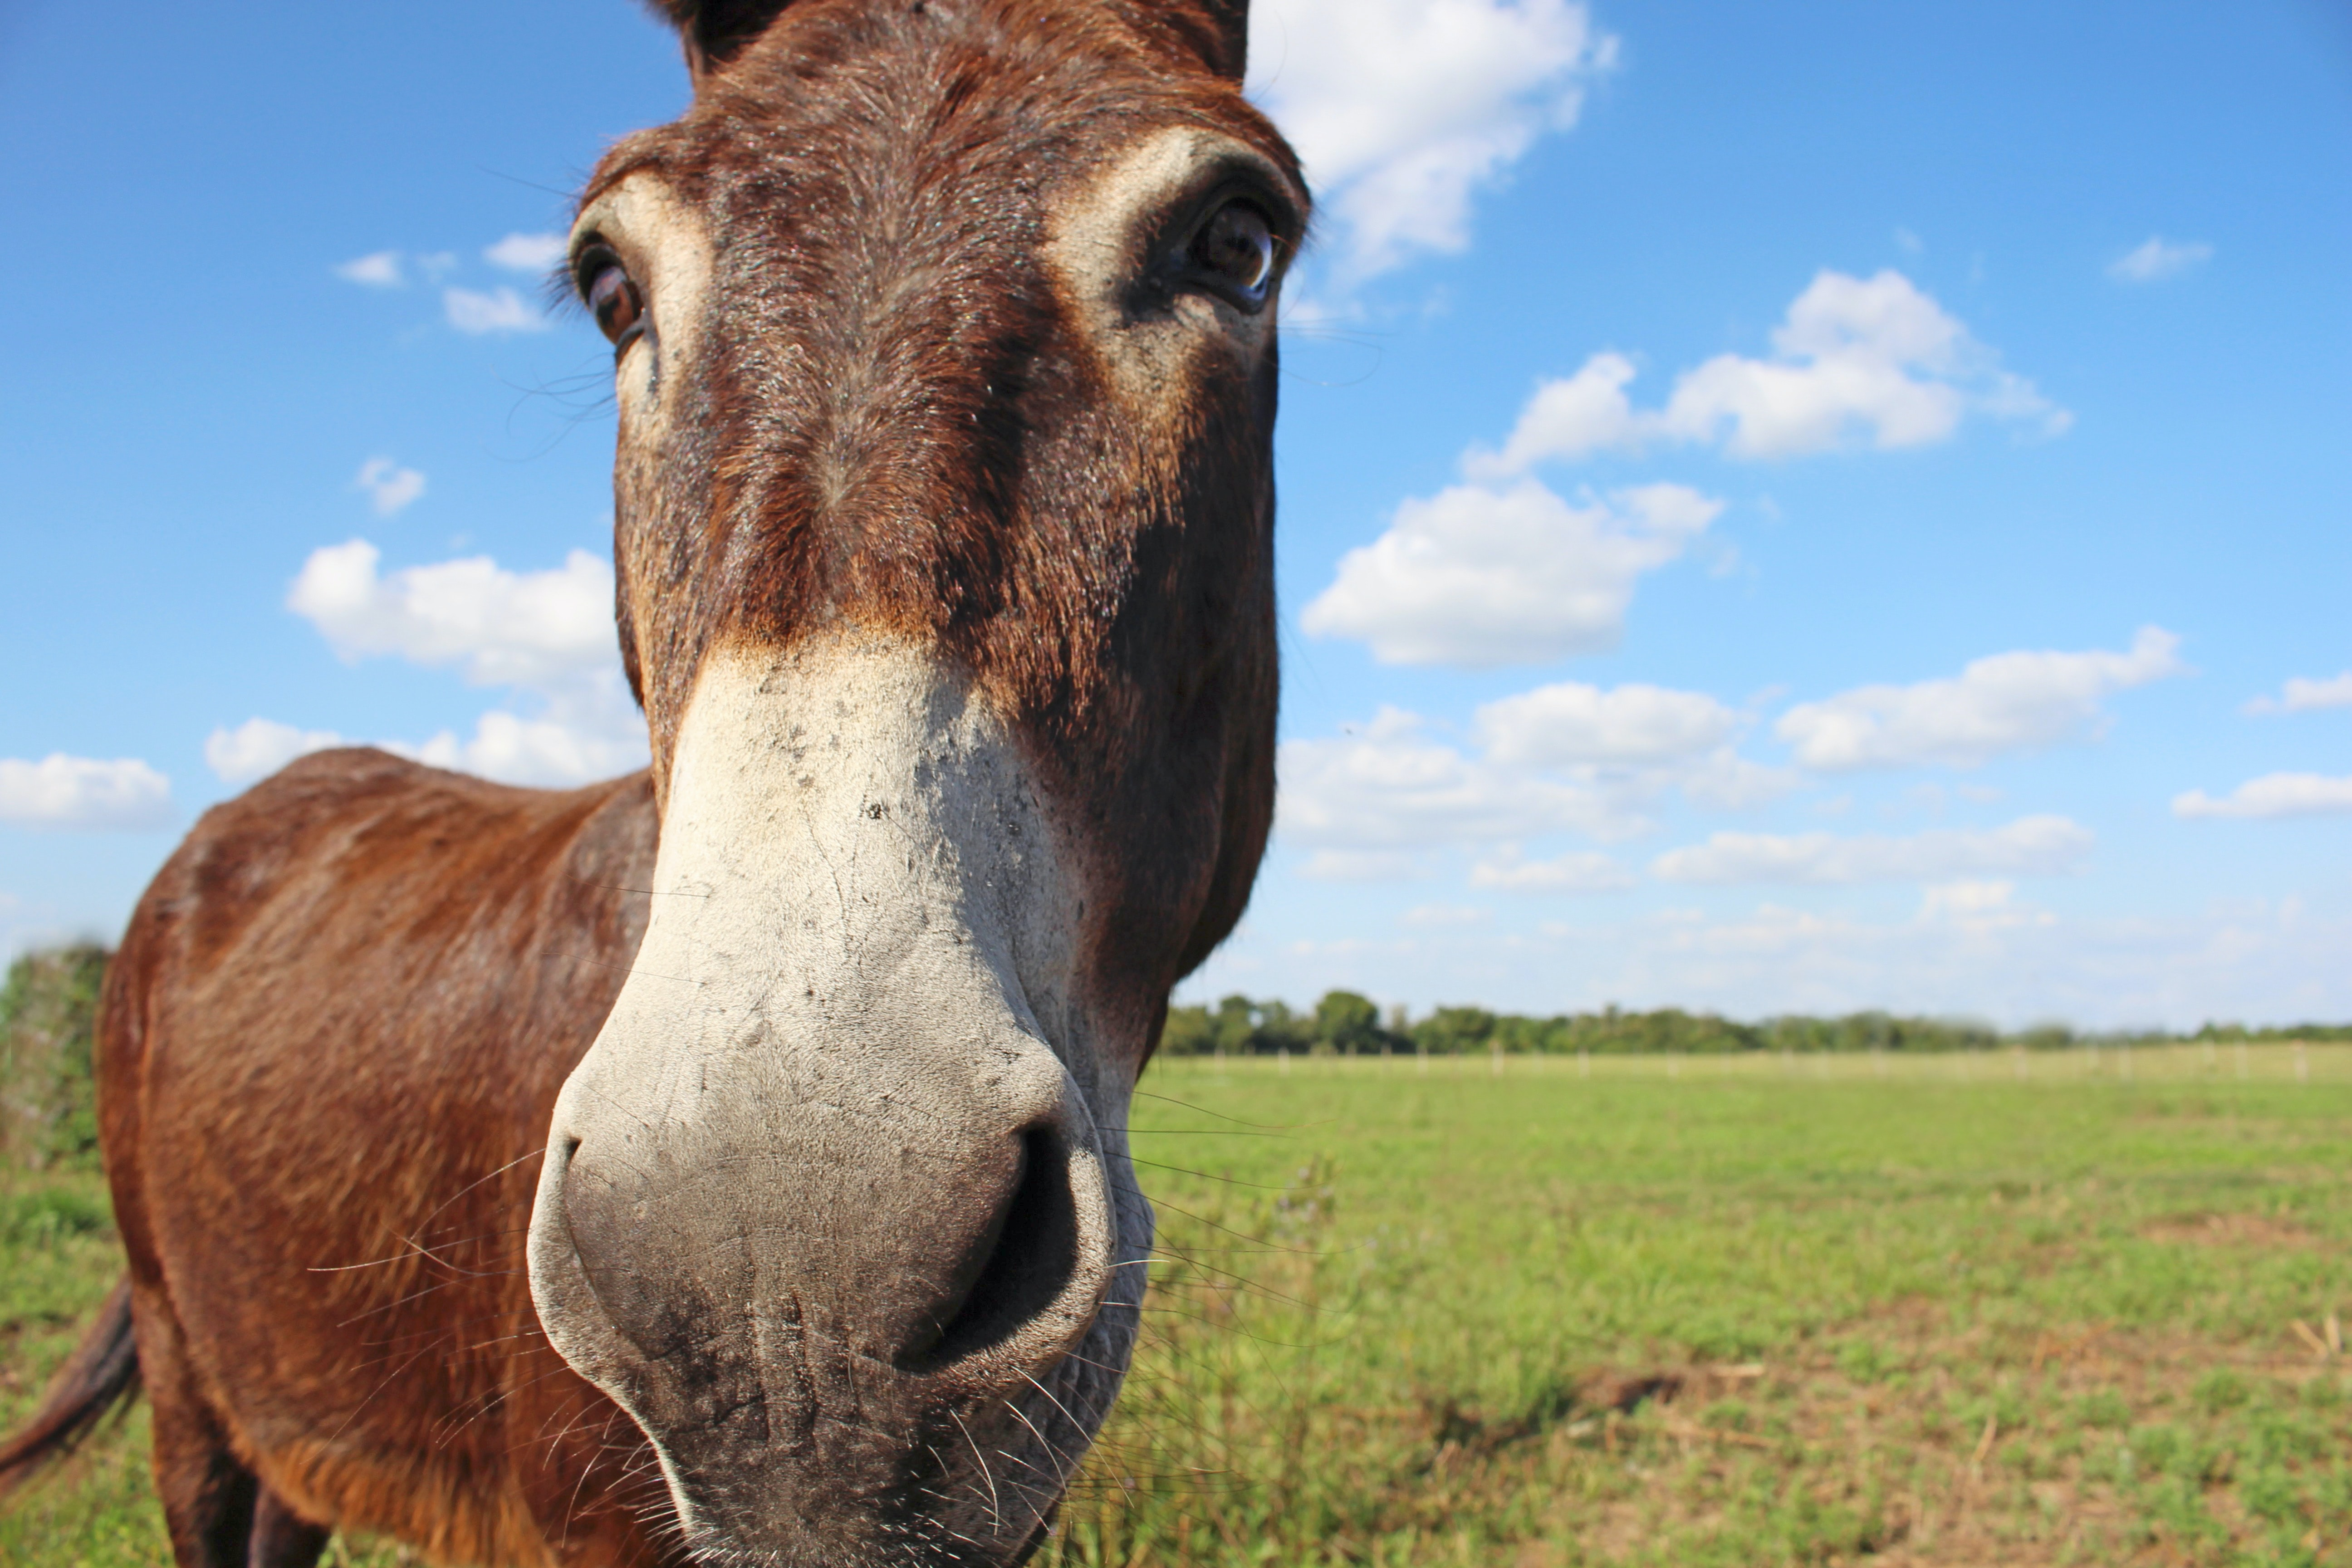 closed up photo of brown donkey on green grass field under blue and cloudy sky